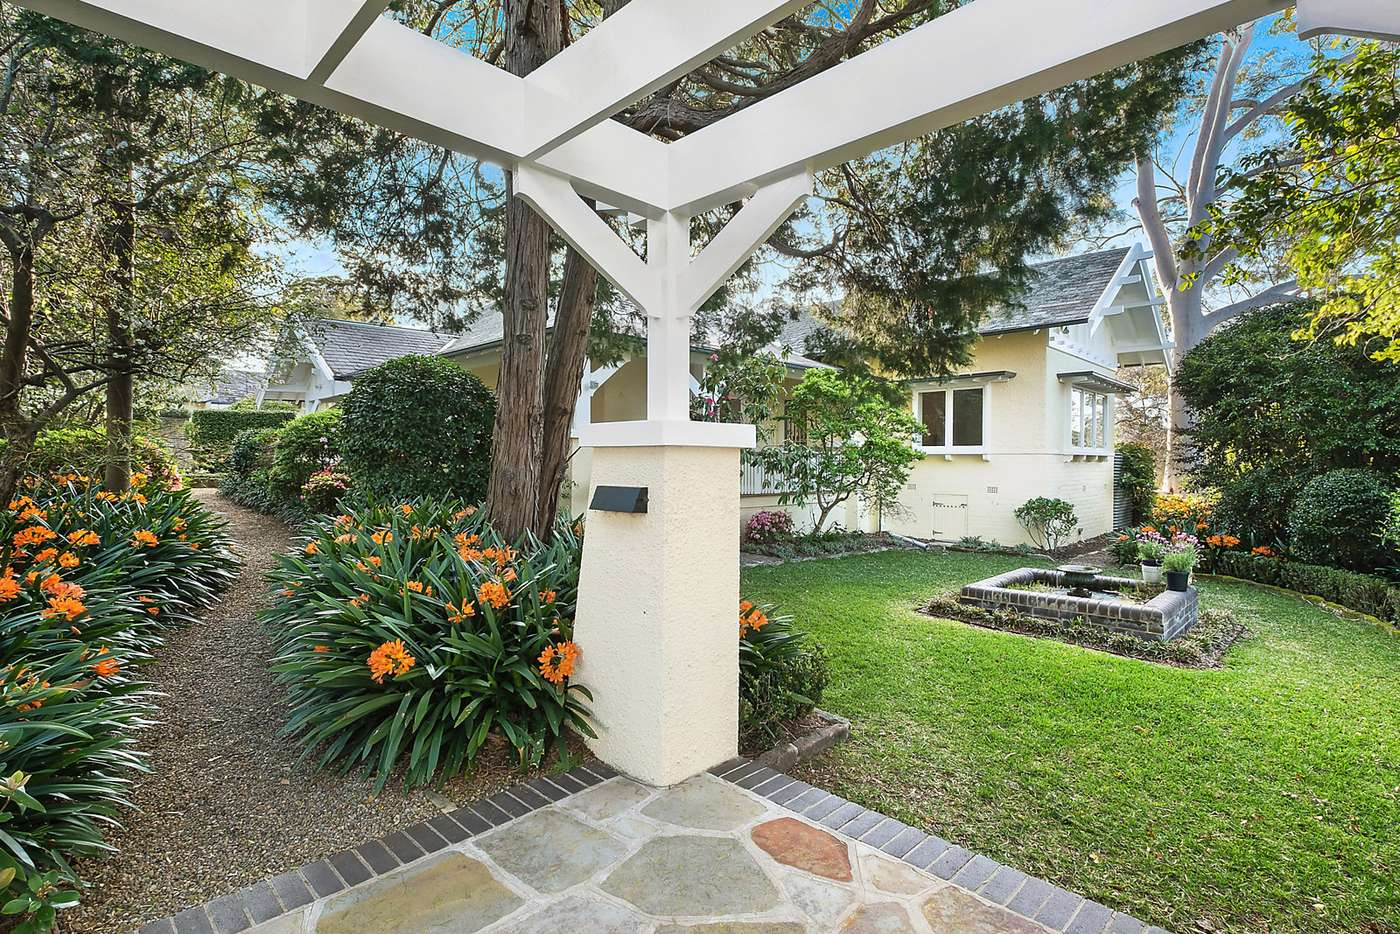 Fifth view of Homely house listing, 26A Merrivale Road, Pymble NSW 2073